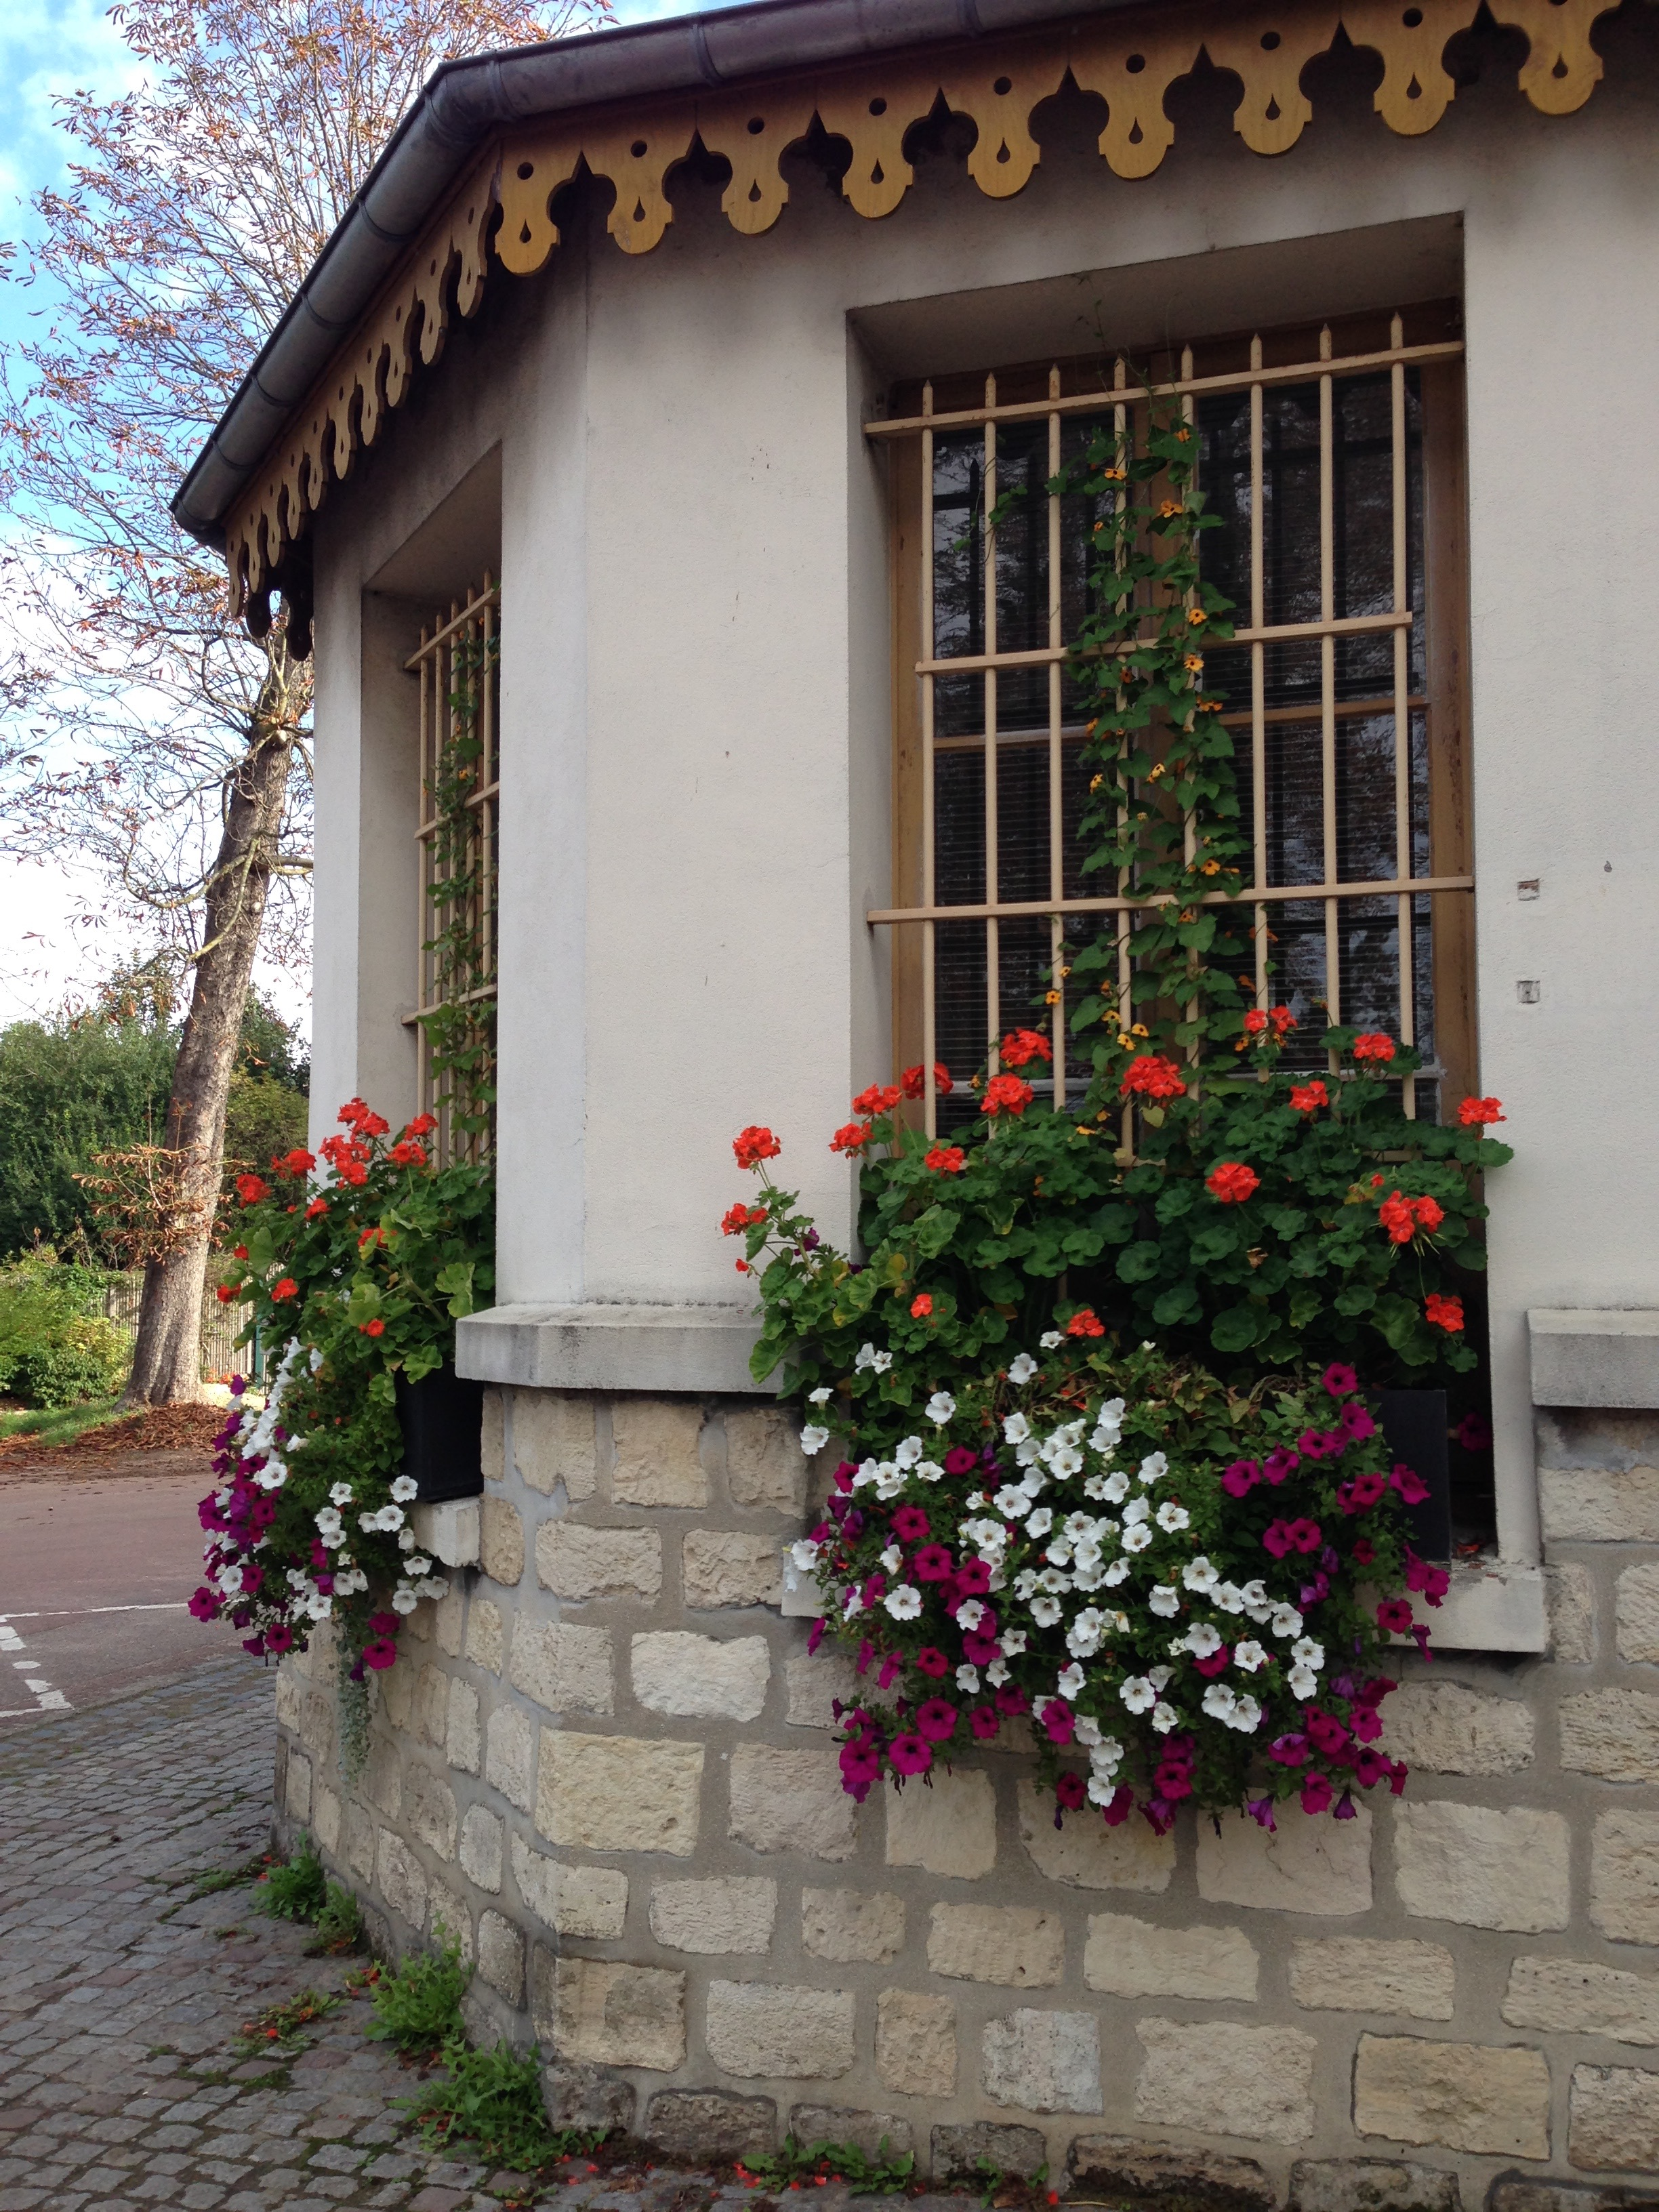 Flower boxes, on the way to the Bois de Vincennes